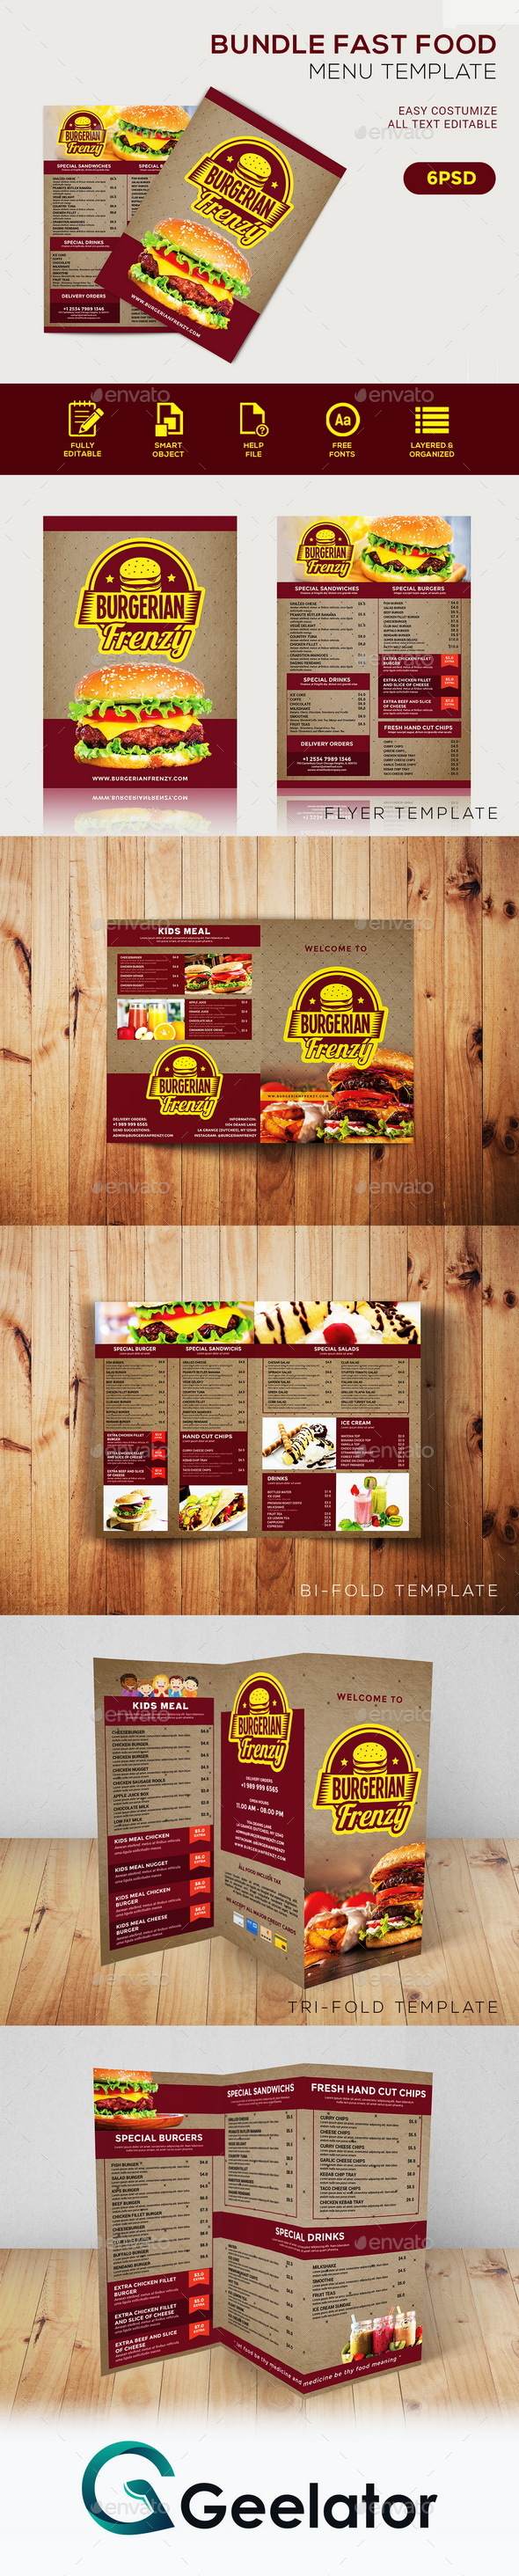 Bundle Fast Food Menu Template - Food Menus Print Templates